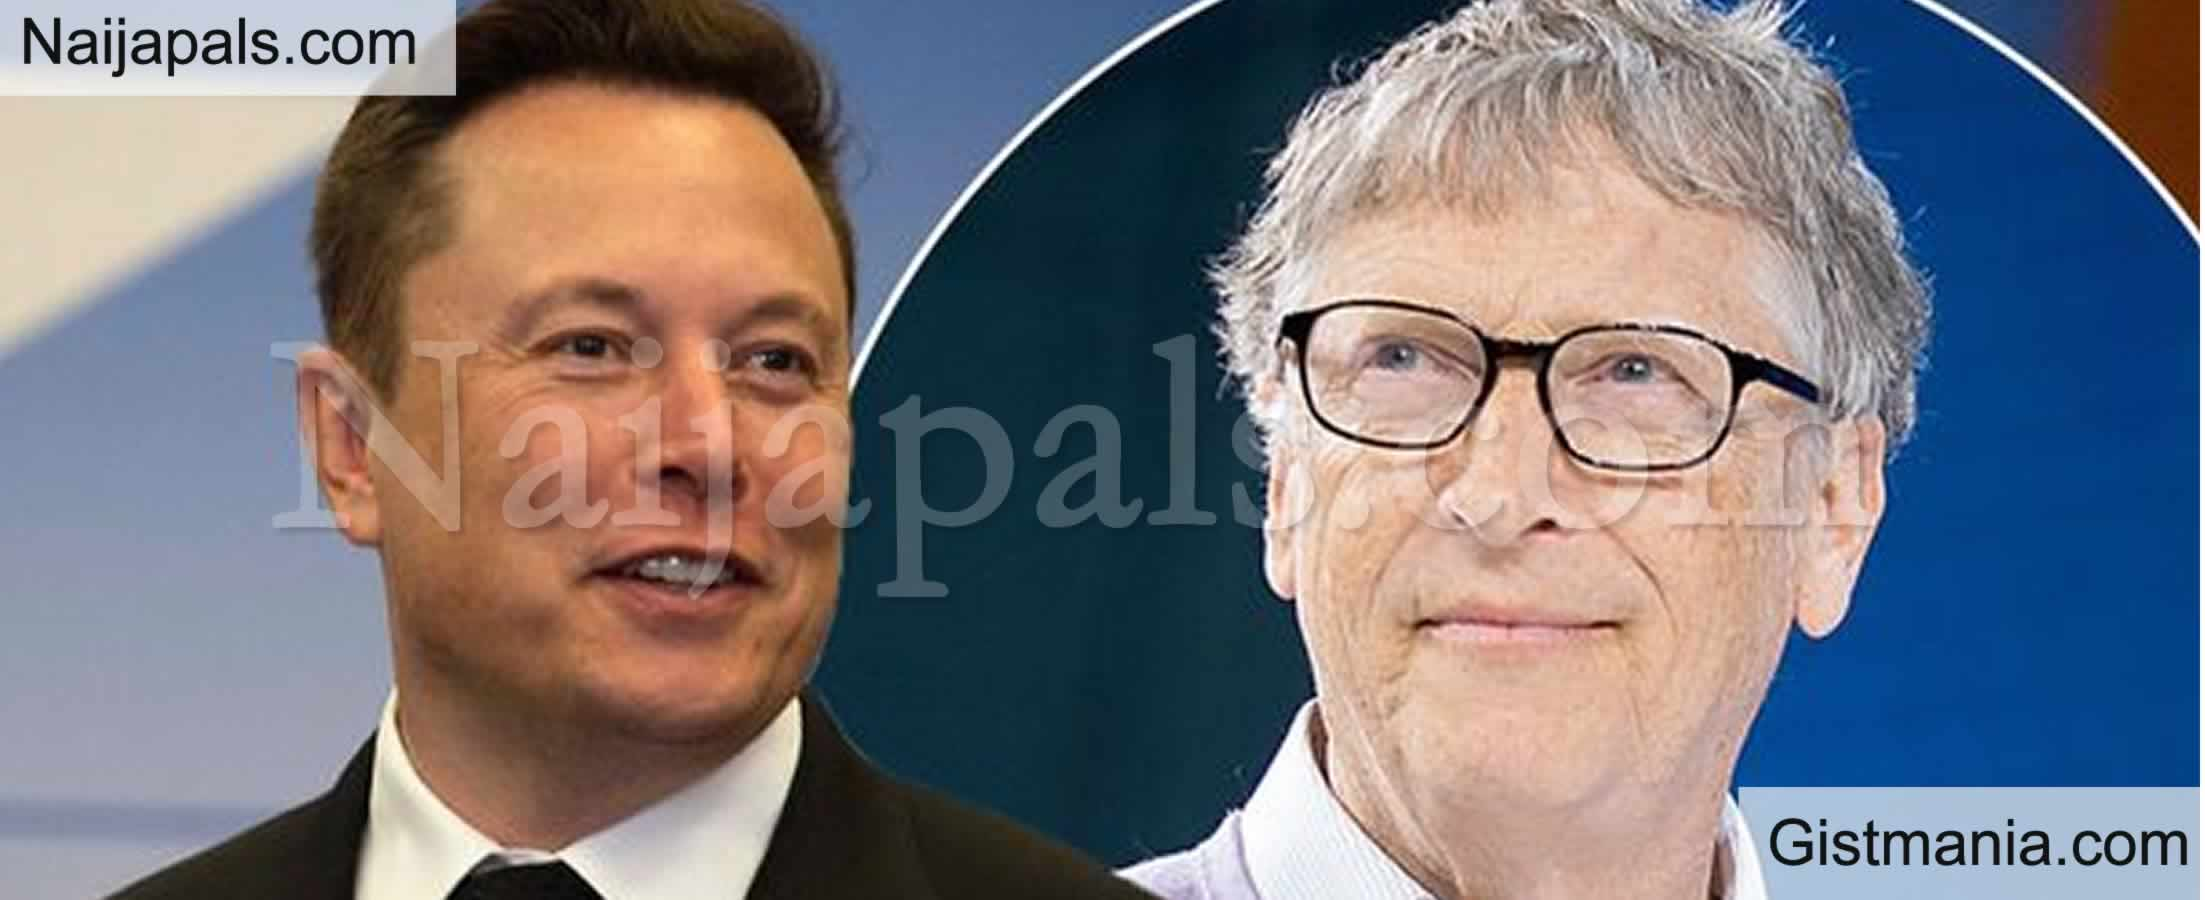 <img alt='.' class='lazyload' data-src='https://img.gistmania.com/emot/thumbs_up.gif' /> Tesla and SpaceX CEO, <b>Elon Musk Beats Bill Gates To Become World's 2nd Richest Person</b>